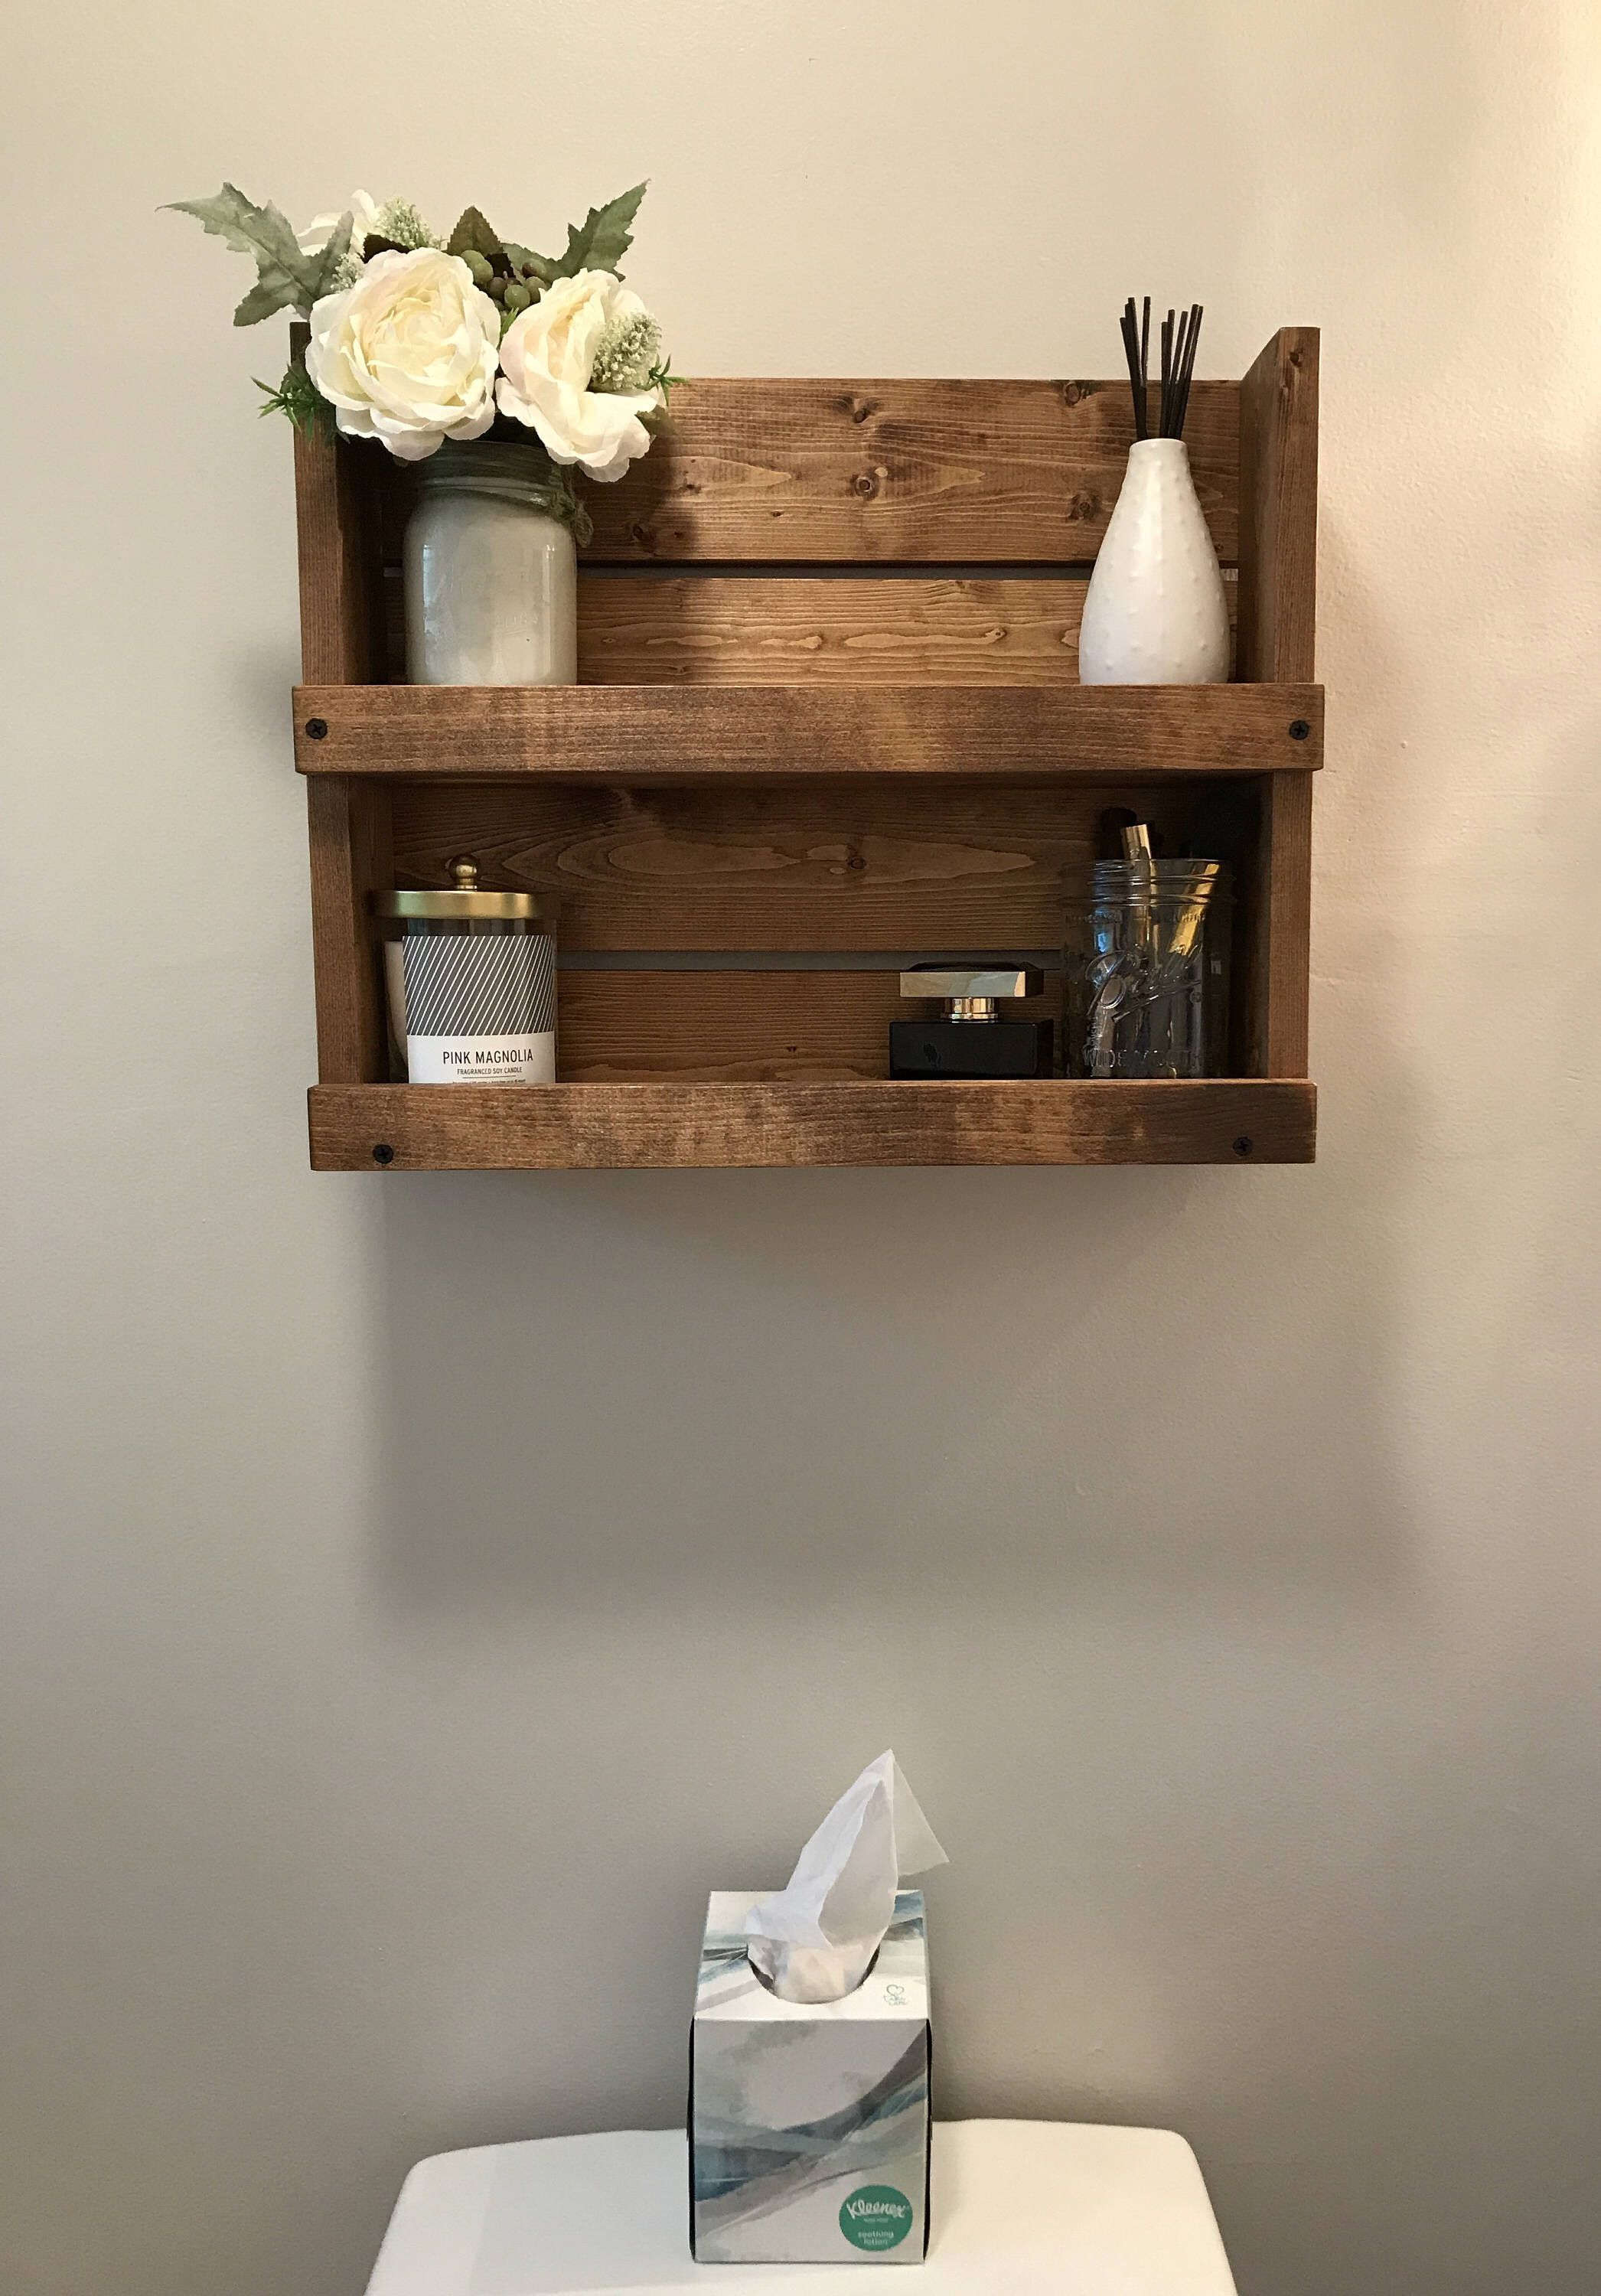 shelving ikea shelf helpful target brown shelves to storage black hallmark family designs hemnes how units unit bathroom diy from stain channel wanted home